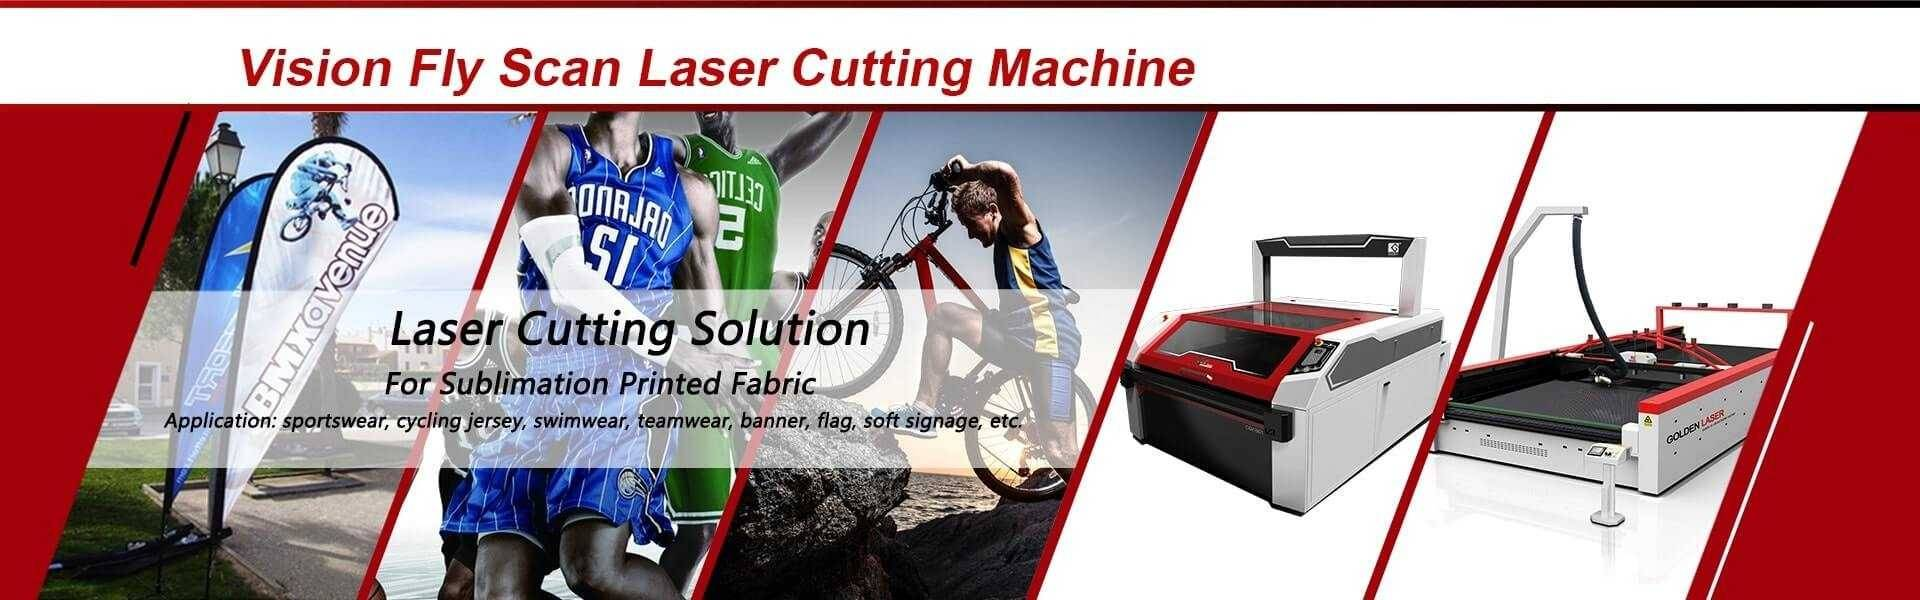 fyzje laser cutting machine-SGIA banner